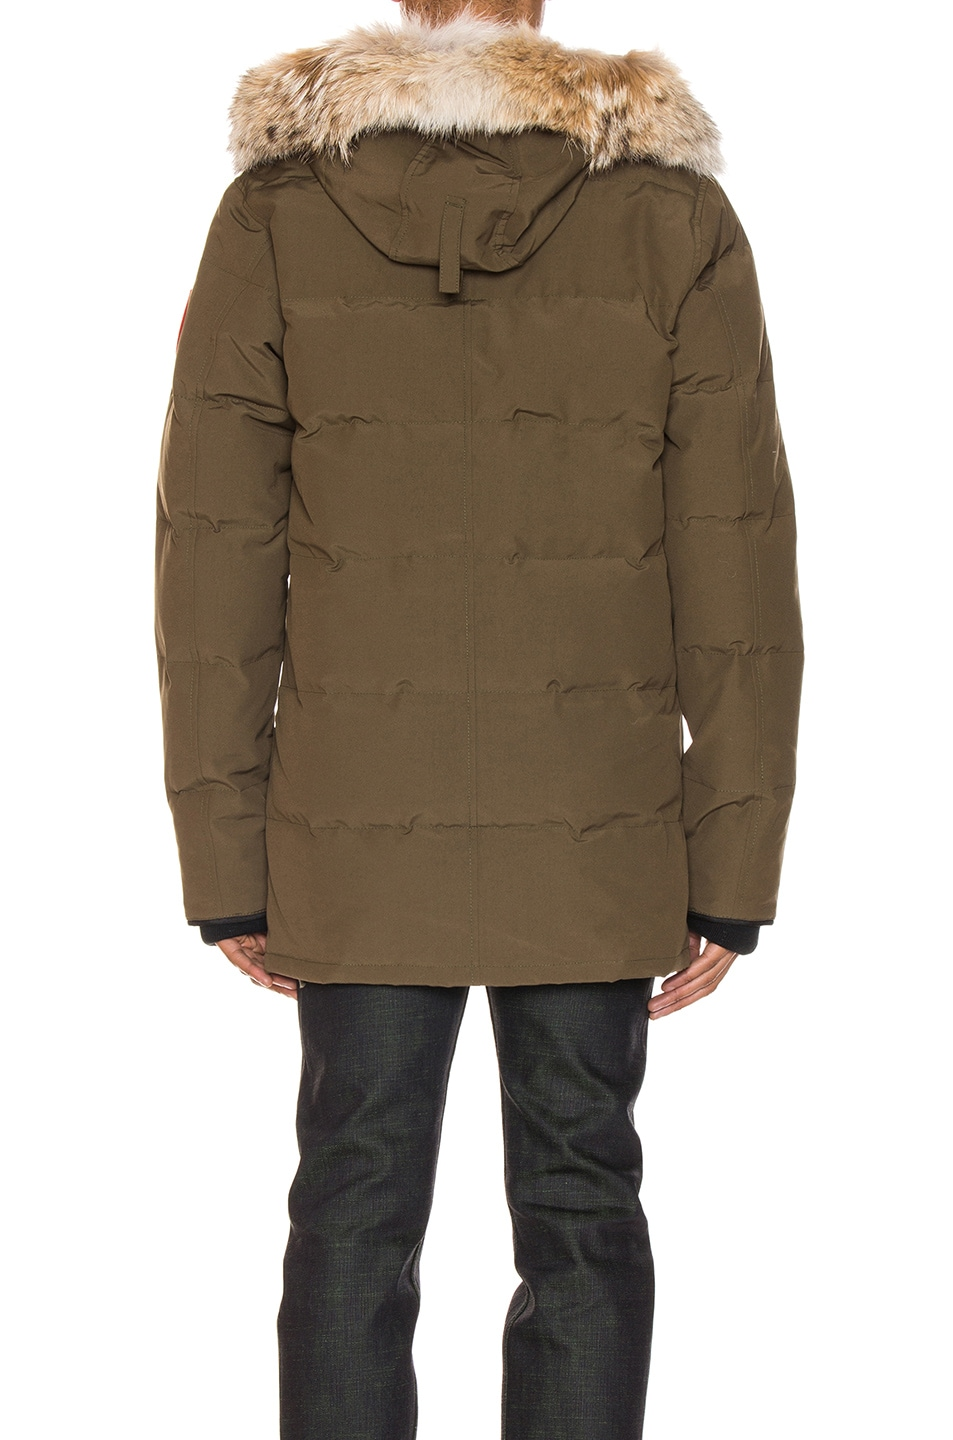 Image 5 of Canada Goose Carson Parka in Military Green